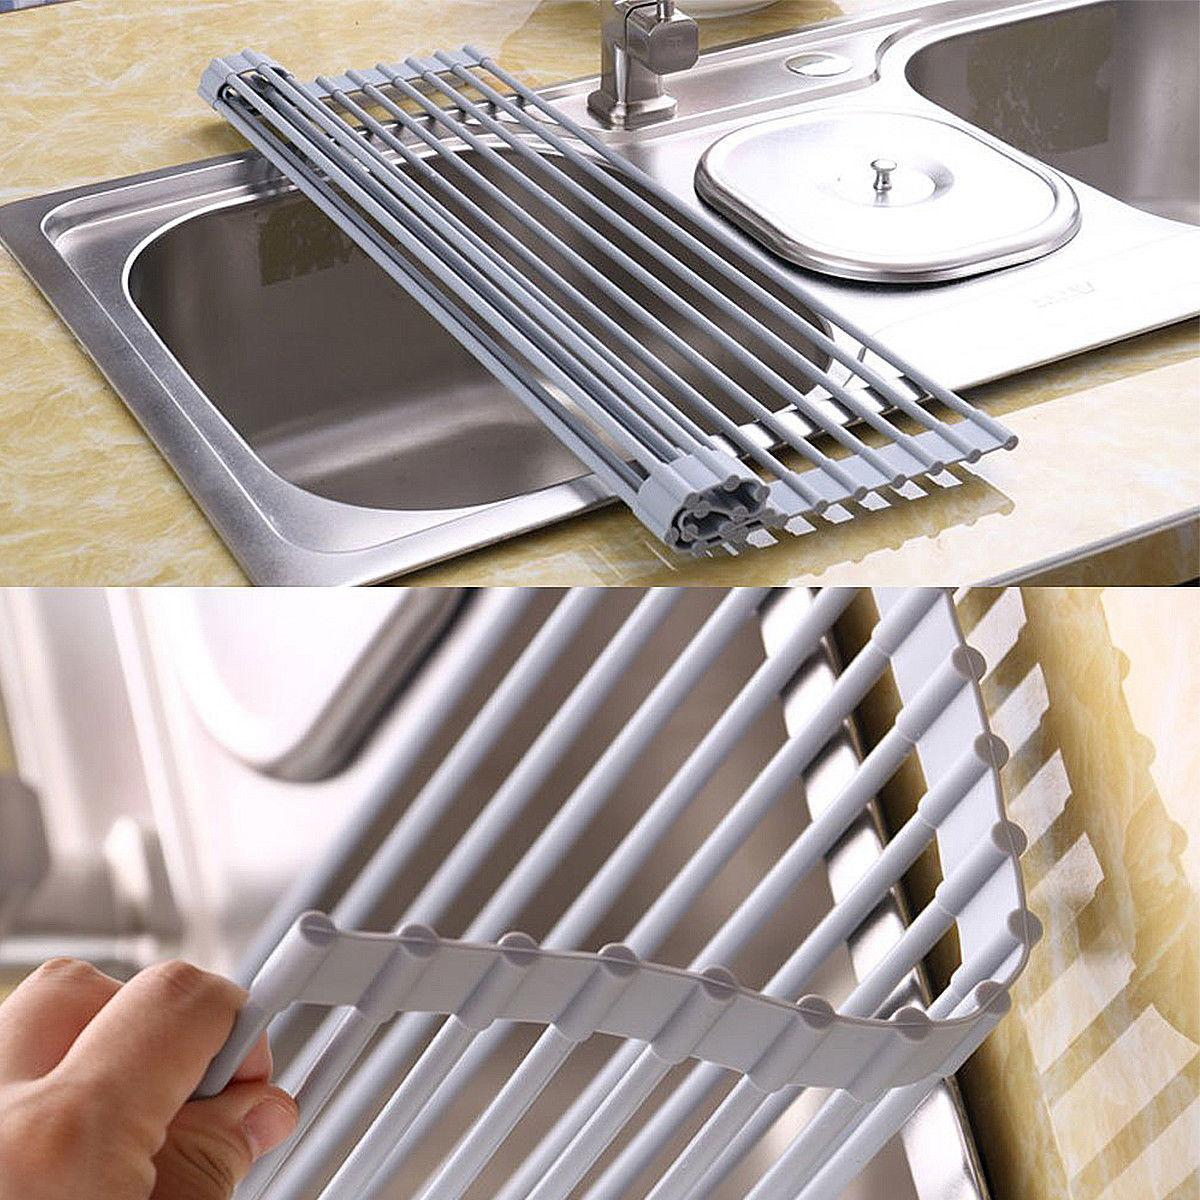 Stainless Steel Dish Drainer Drying Rack 18 Roll-up Dish Mat